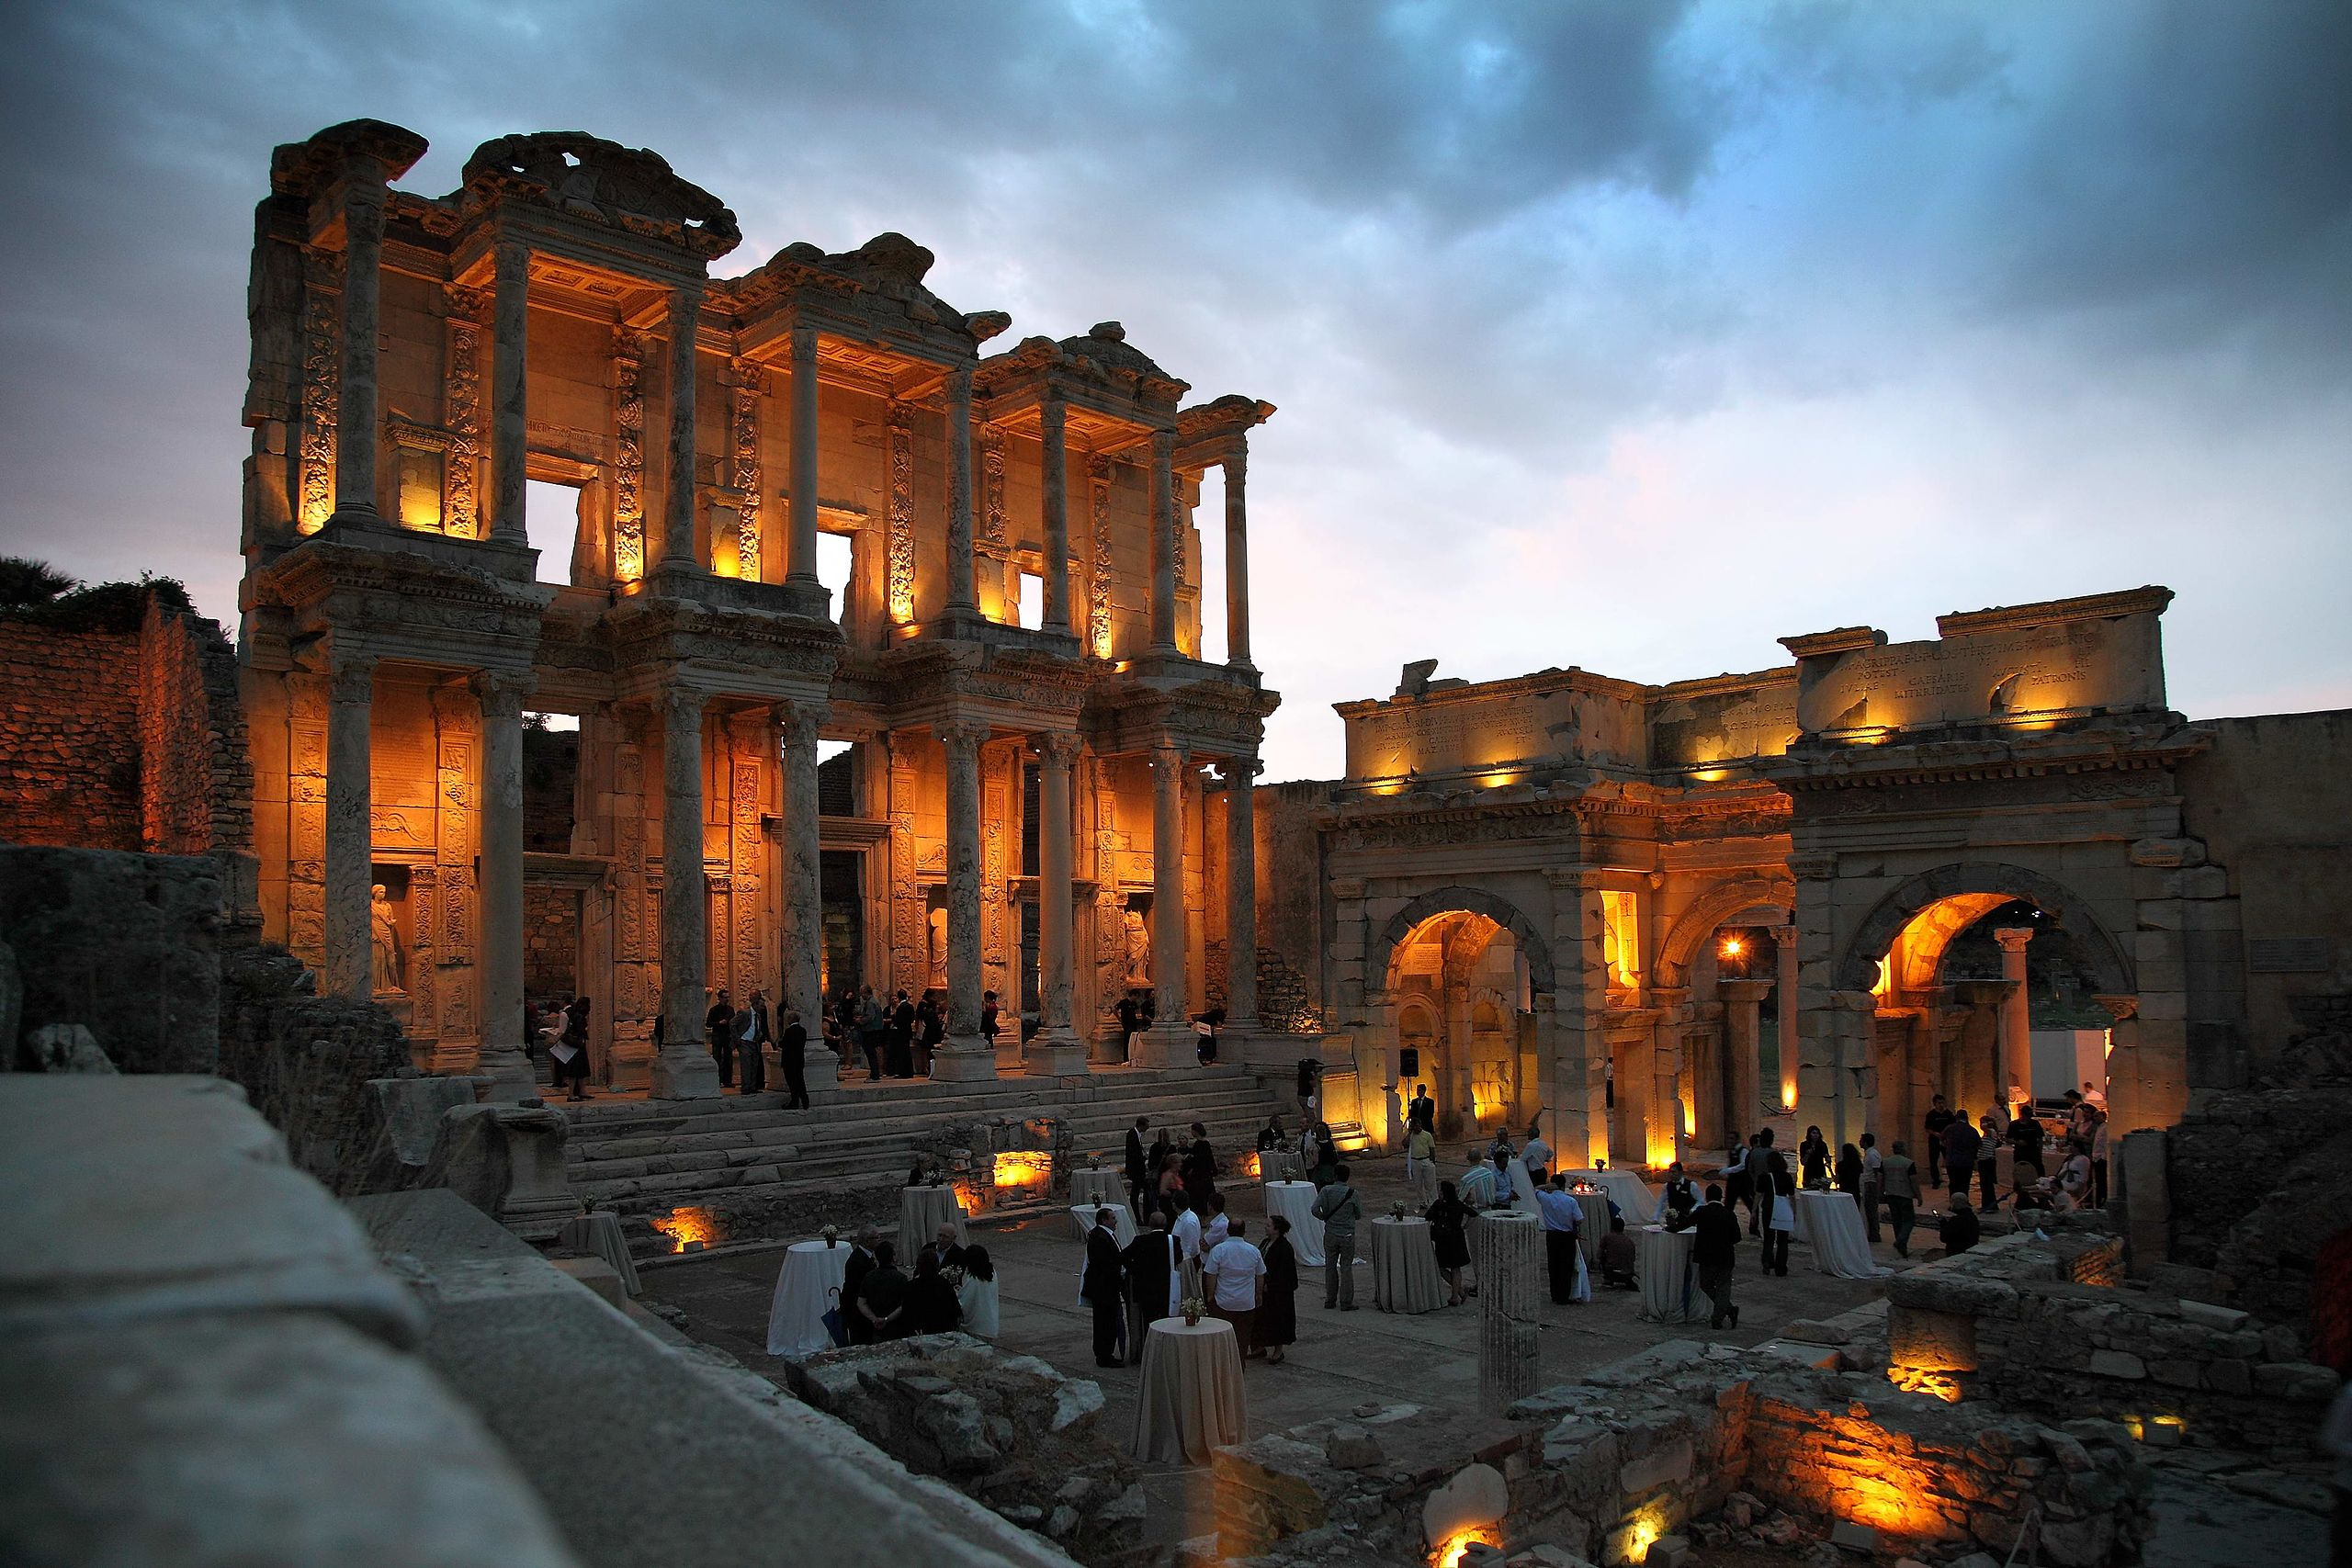 Library of Celsus - provided under Creative Commons